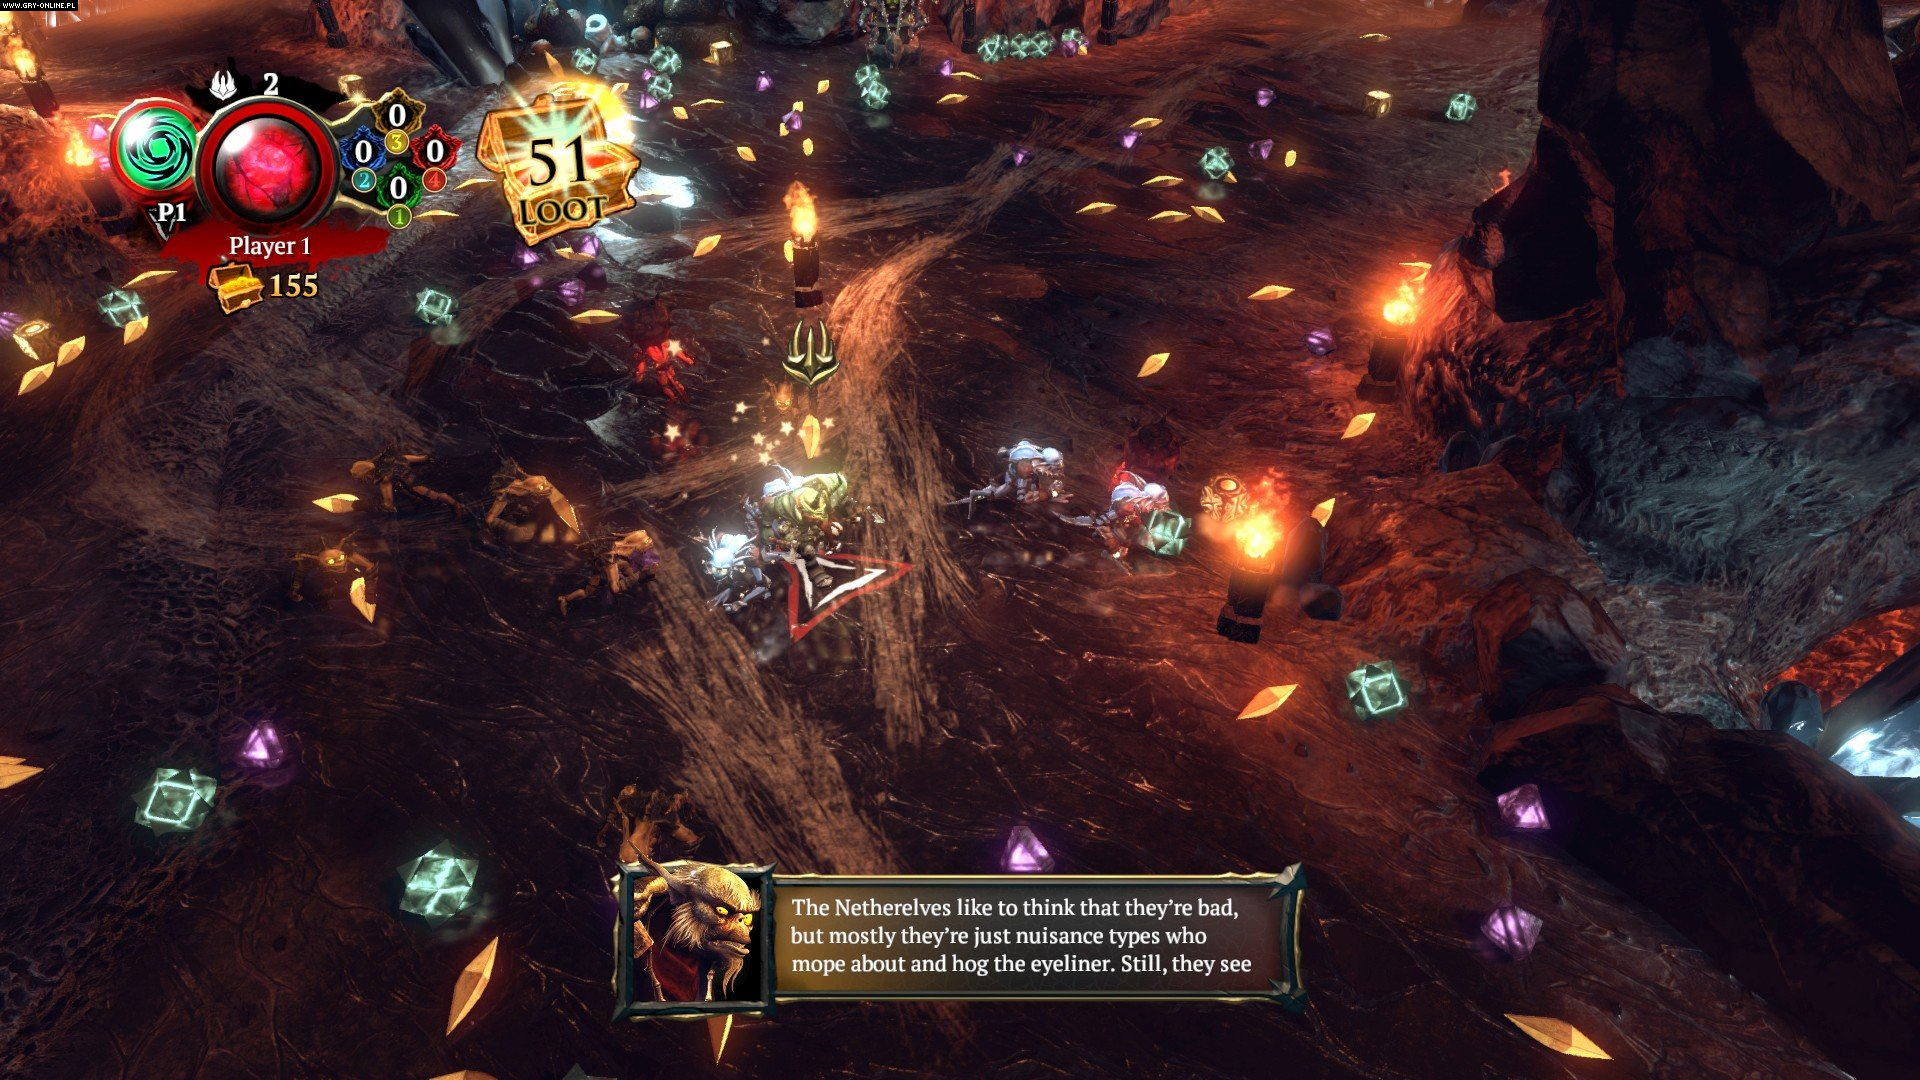 Overlord: Fellowship of Evil PC, PS4, XONE Gry Screen 8/15, Codemasters Software